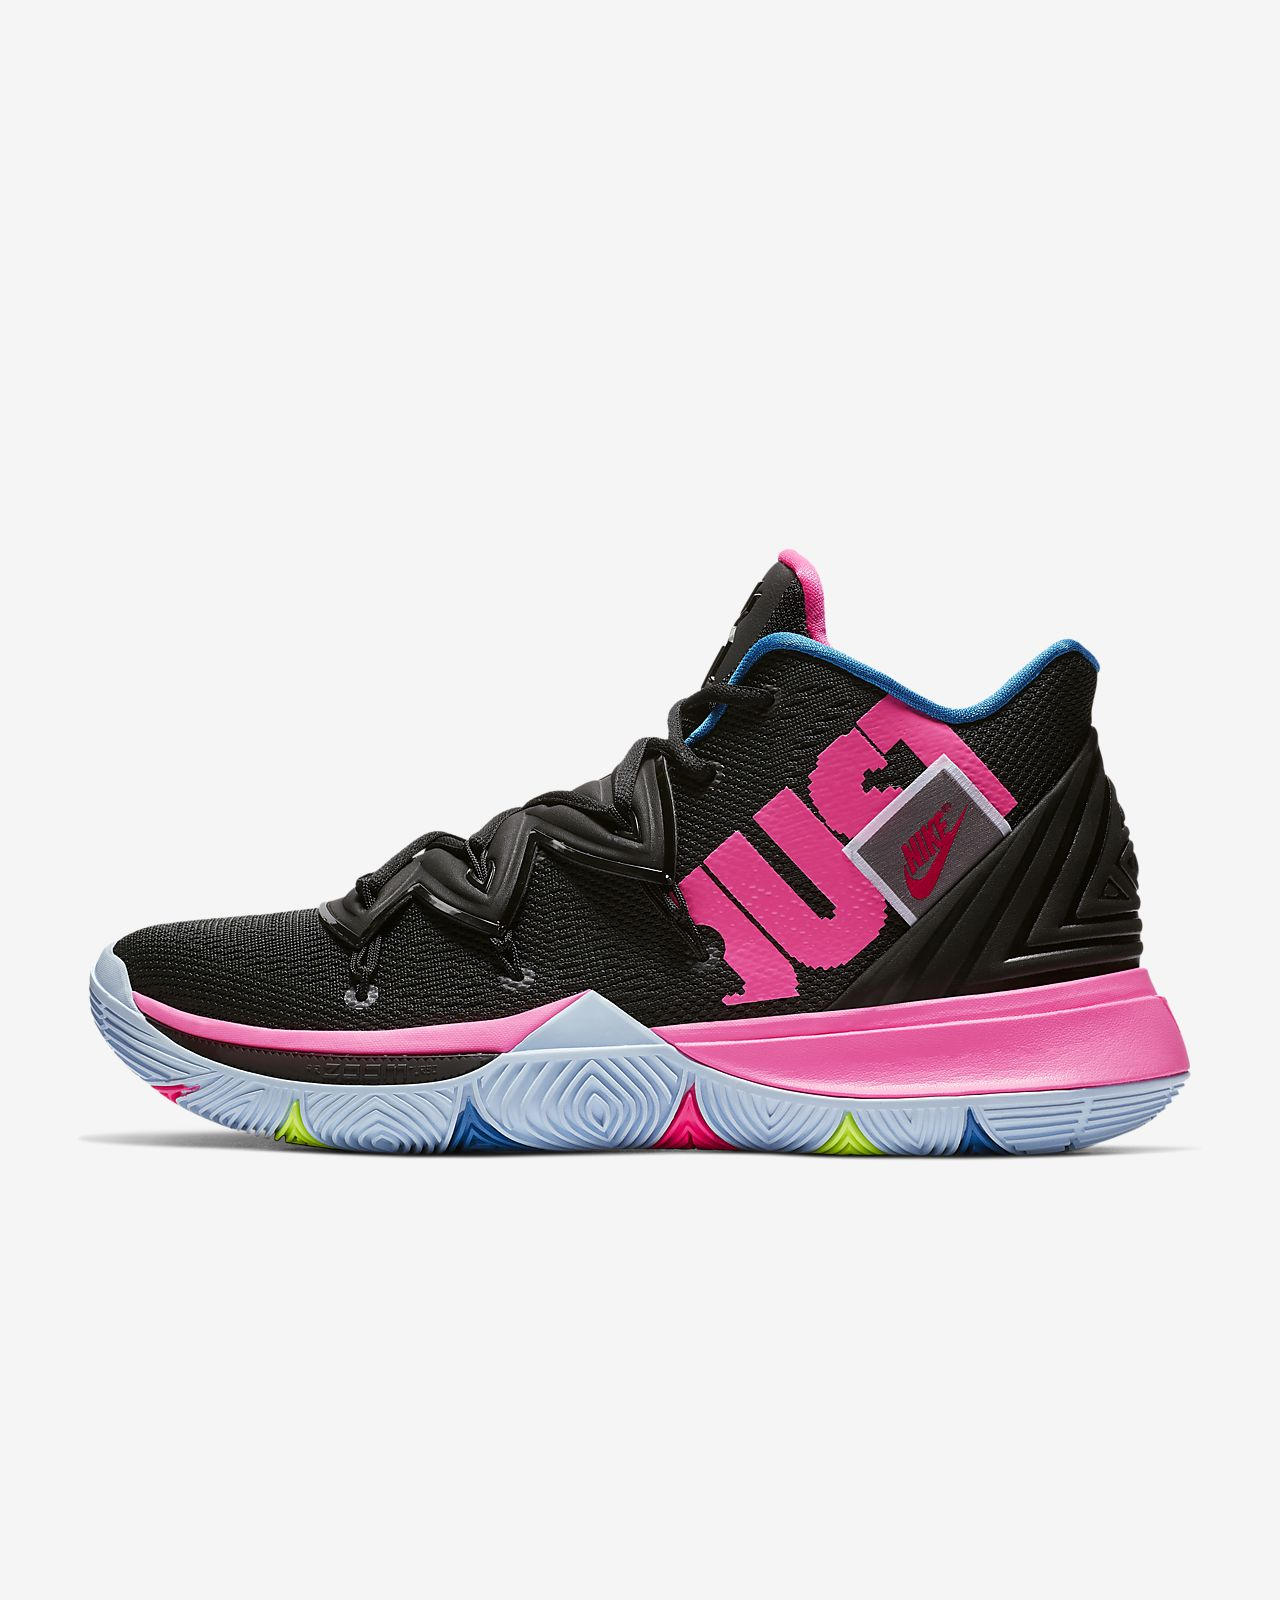 new style 2e745 0d9e9 Low Resolution Kyrie 5 Shoe Kyrie 5 Shoe